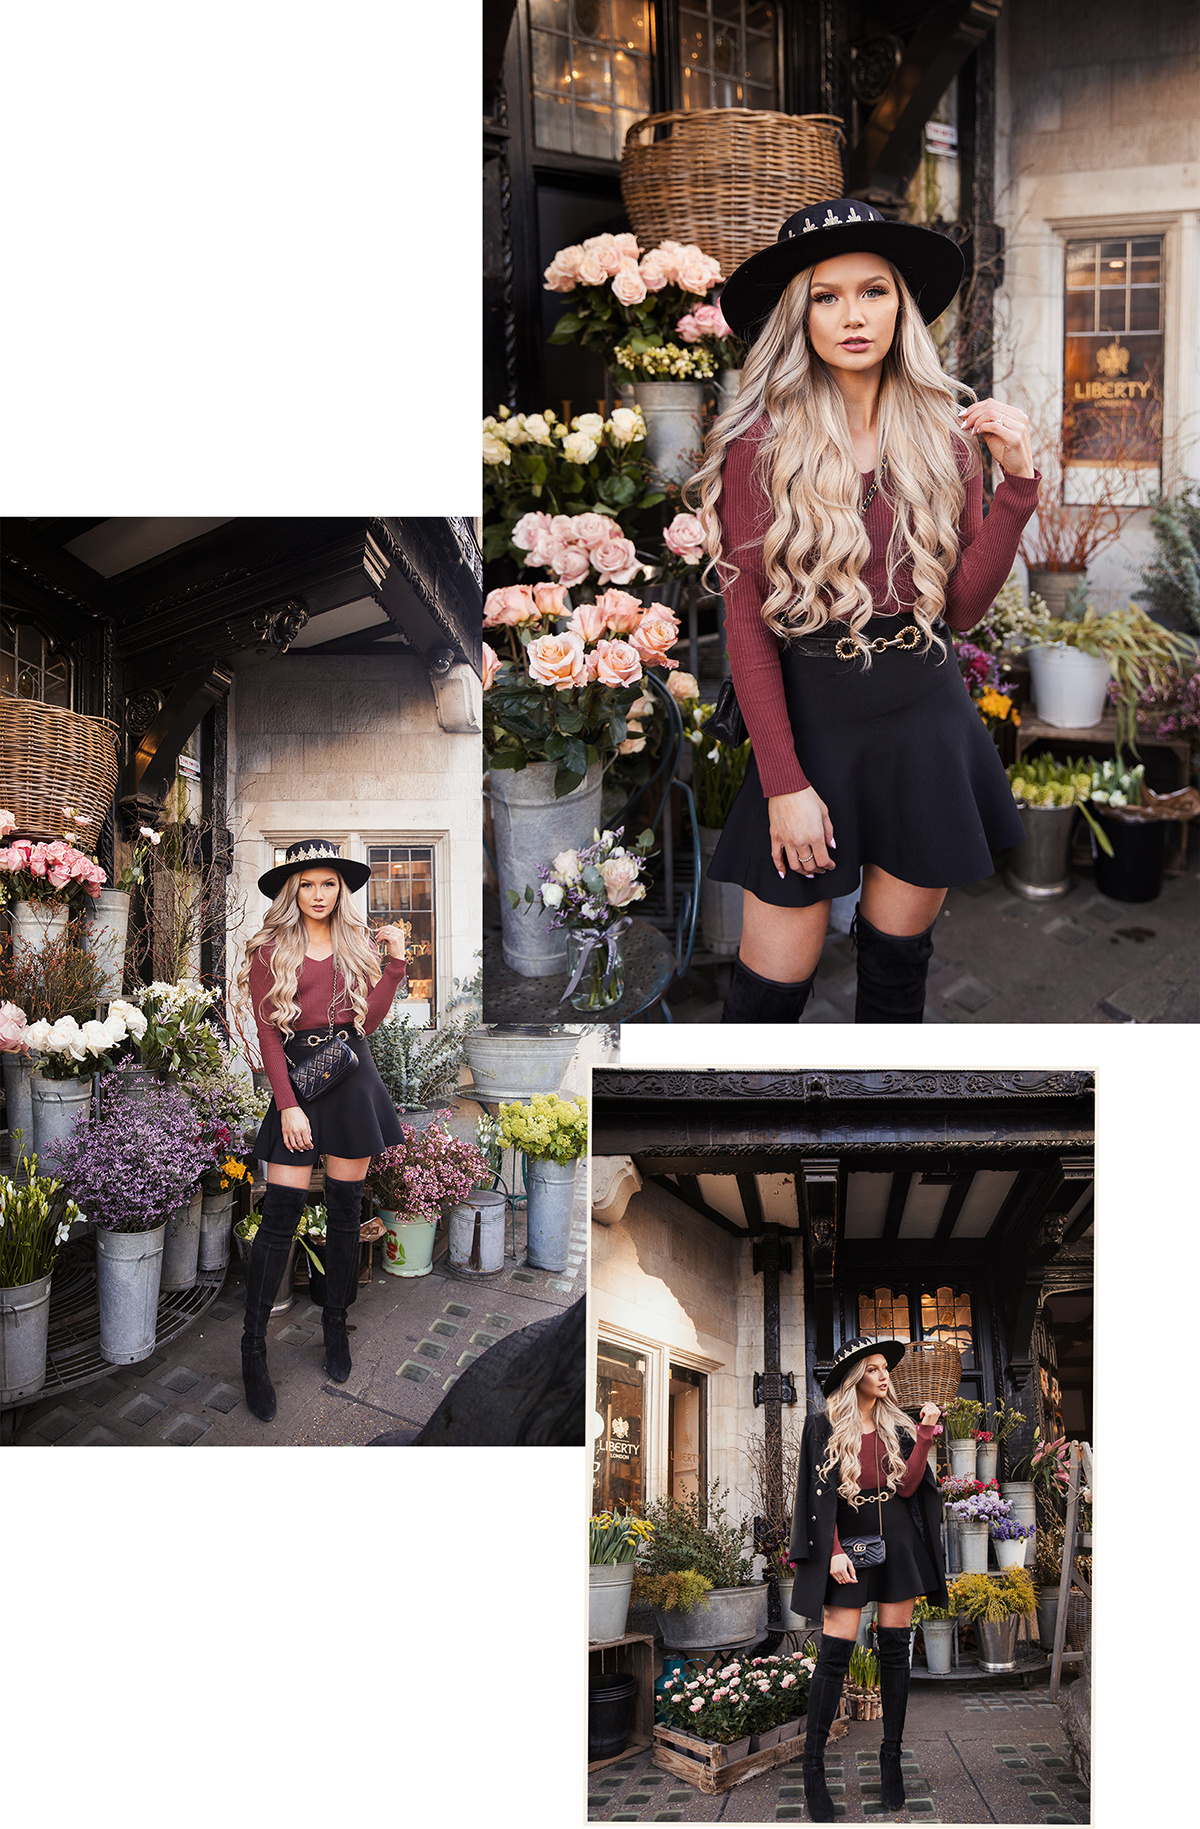 fashion blogger Stephanie Danielle photoshoot in Liberty by London fashion photographer Ailera Stone